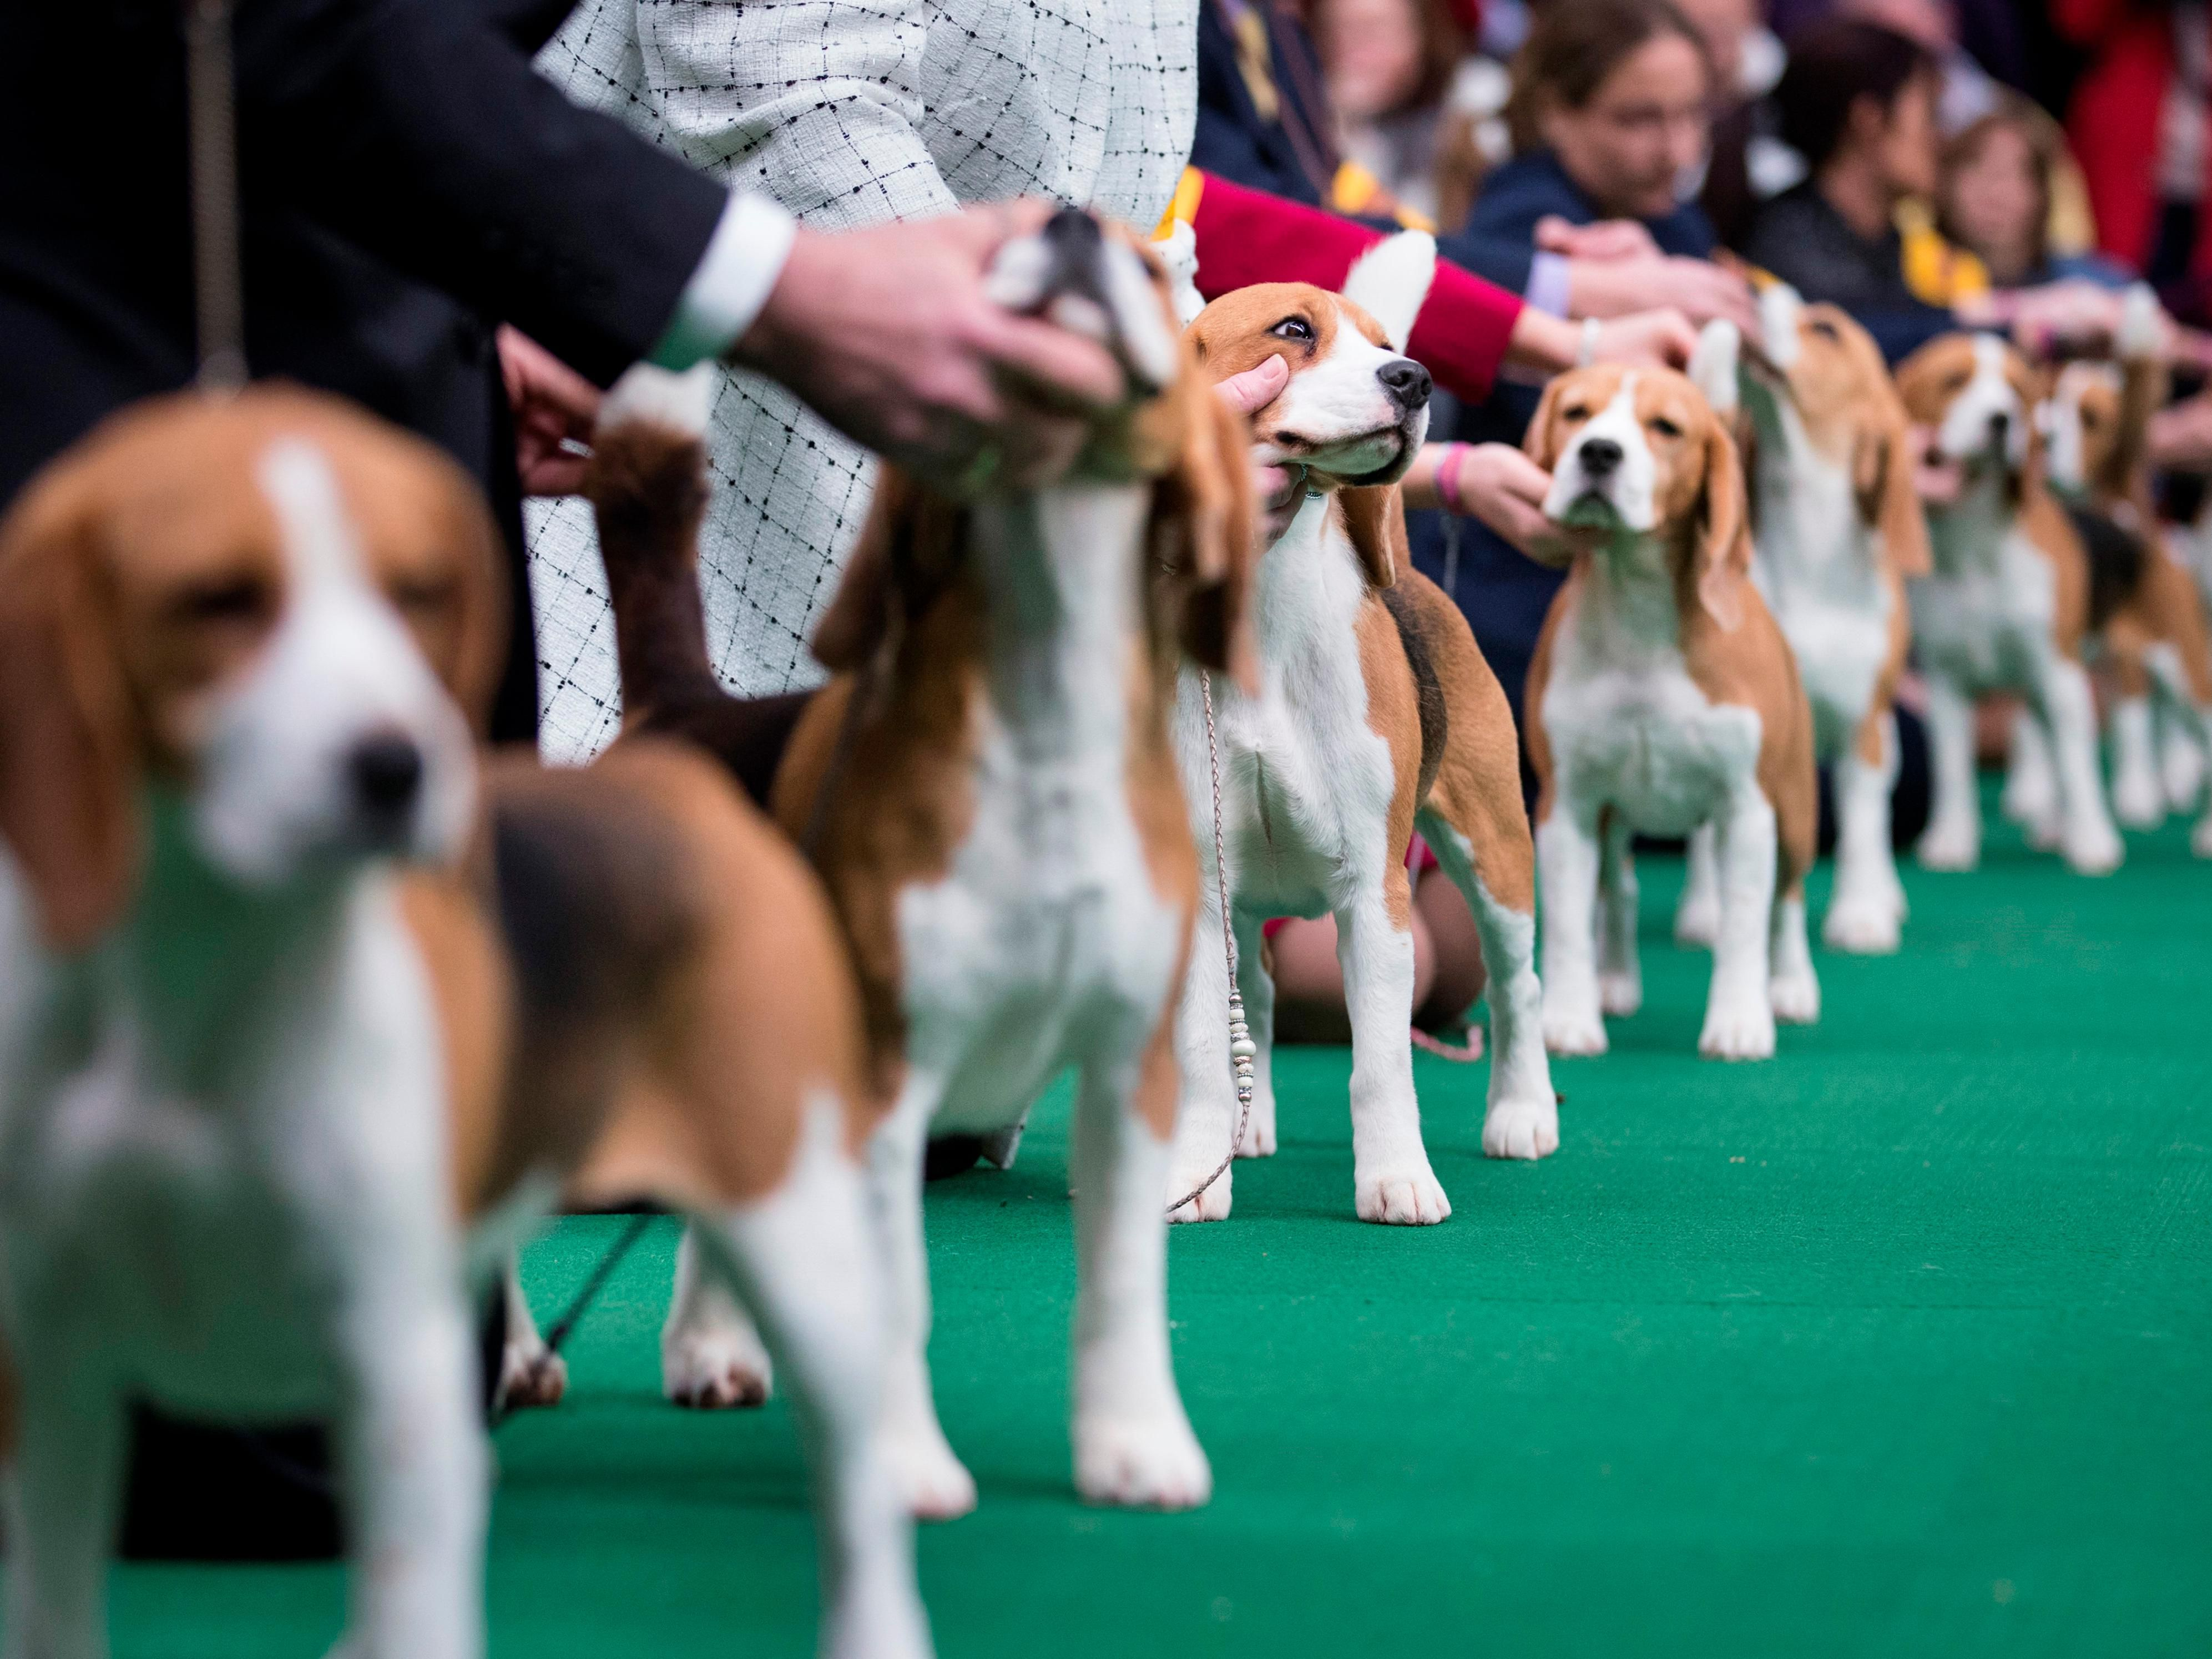 Proud to host many National and Regional Dog Shows and events